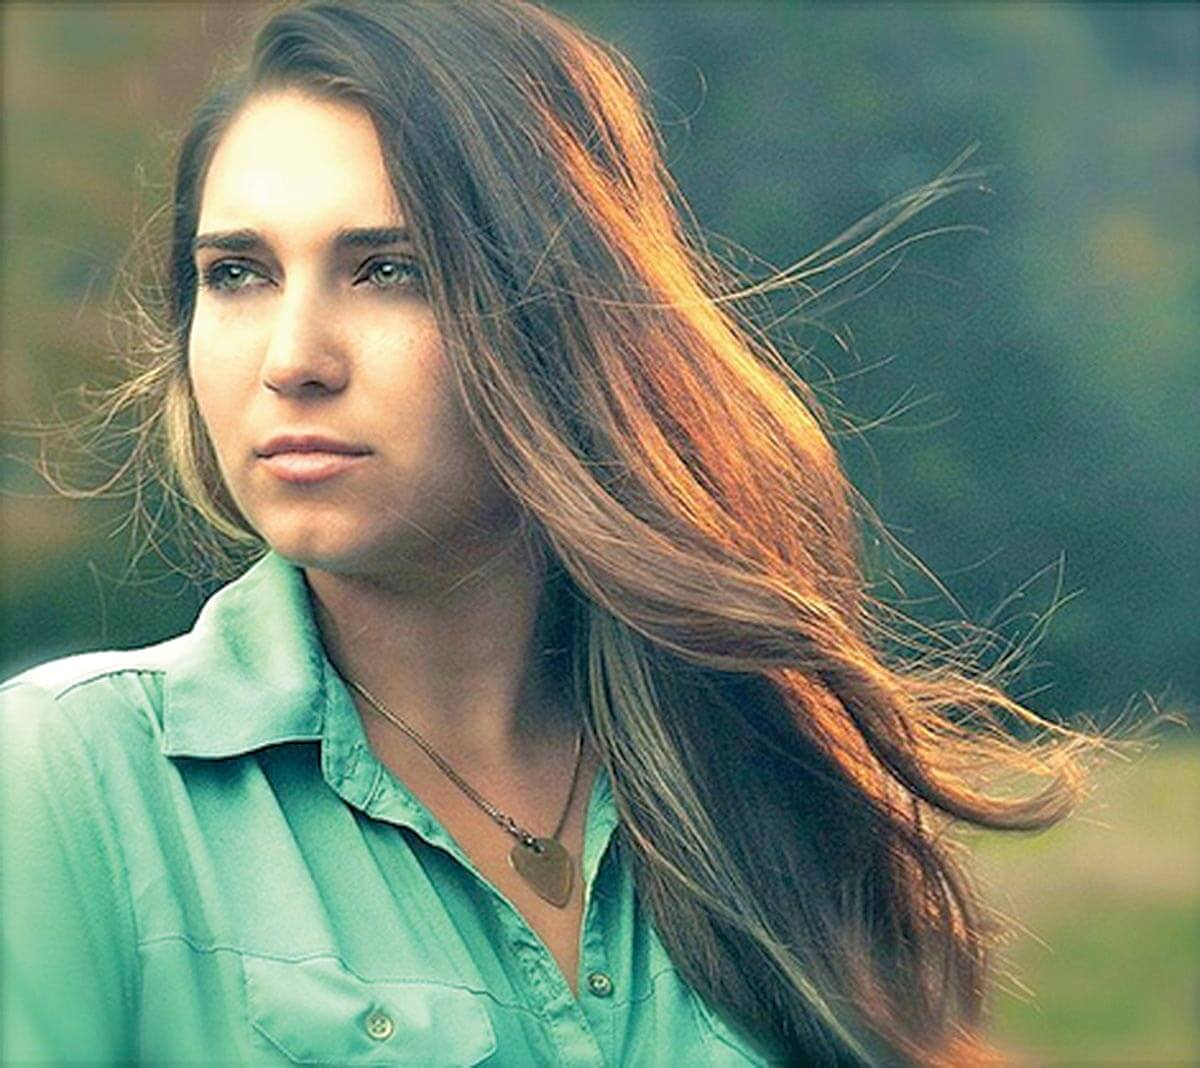 Alabama singer-songwriters gather to display skills on Southern Sisters Tour